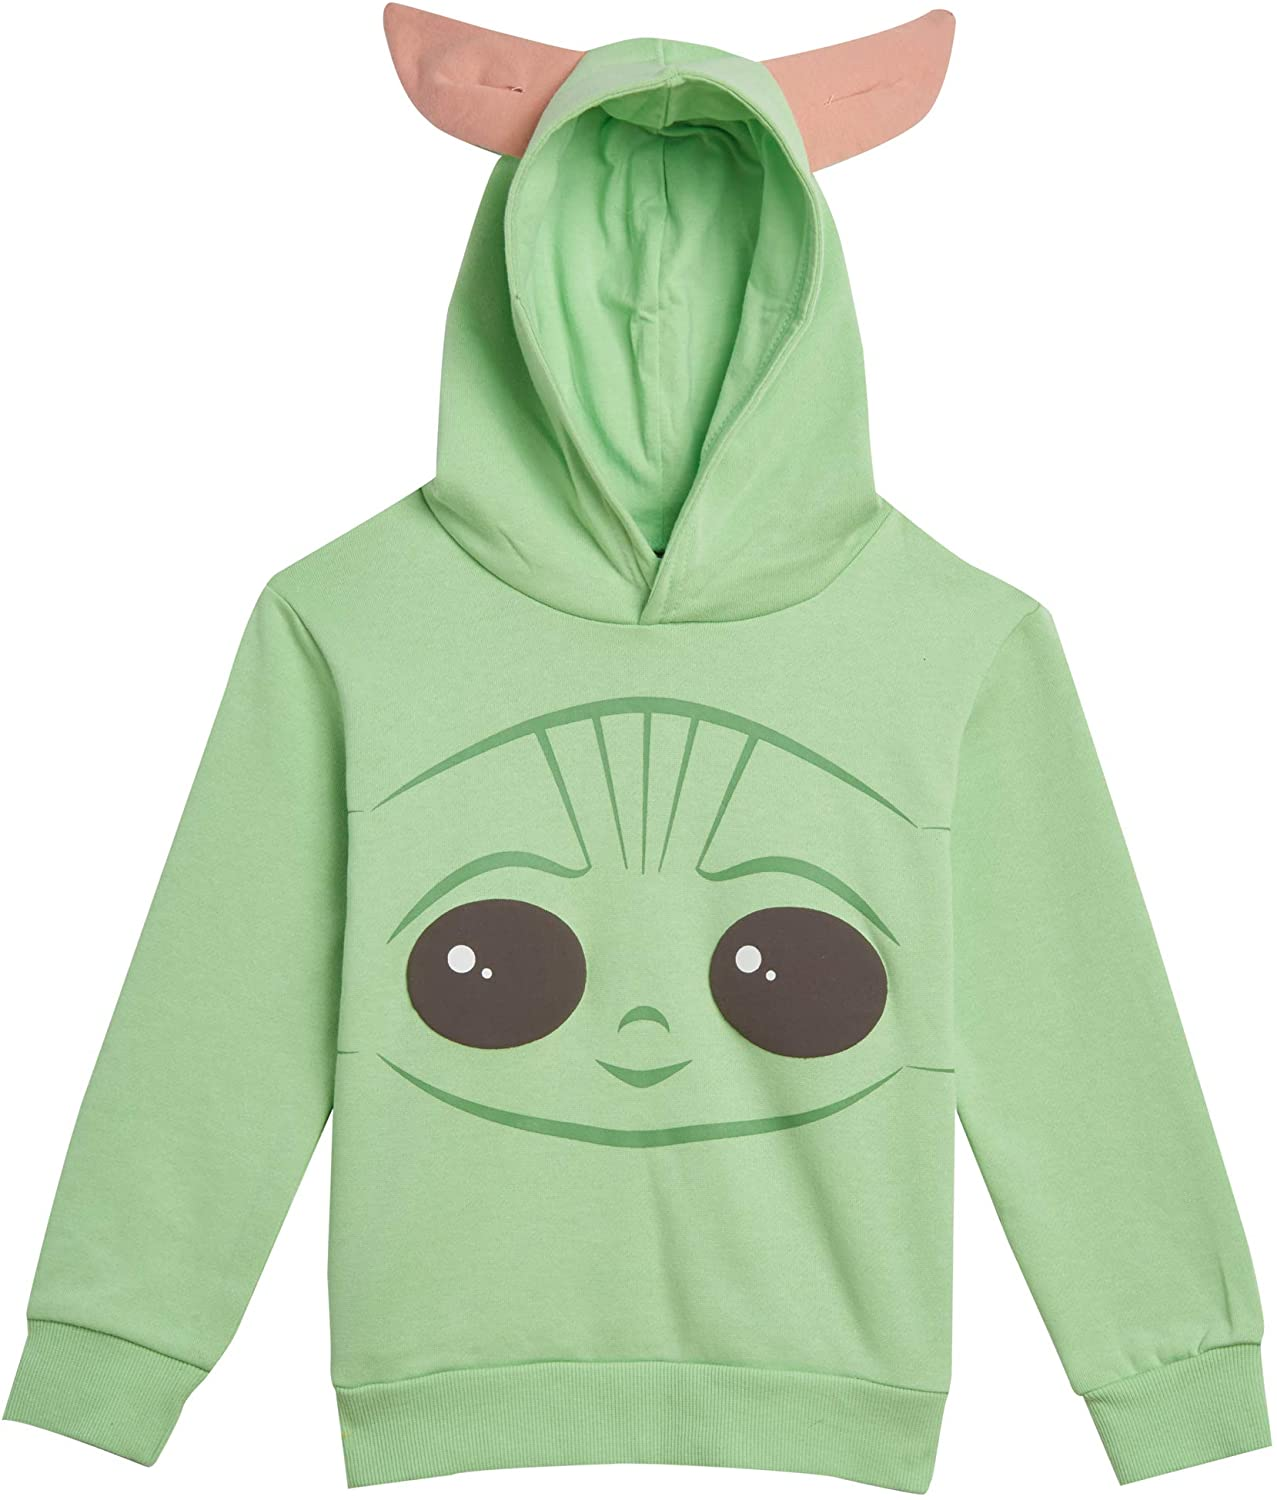 Star Wars Mandalorian The Child Pullover Fleece Costume Hoodie For Kids